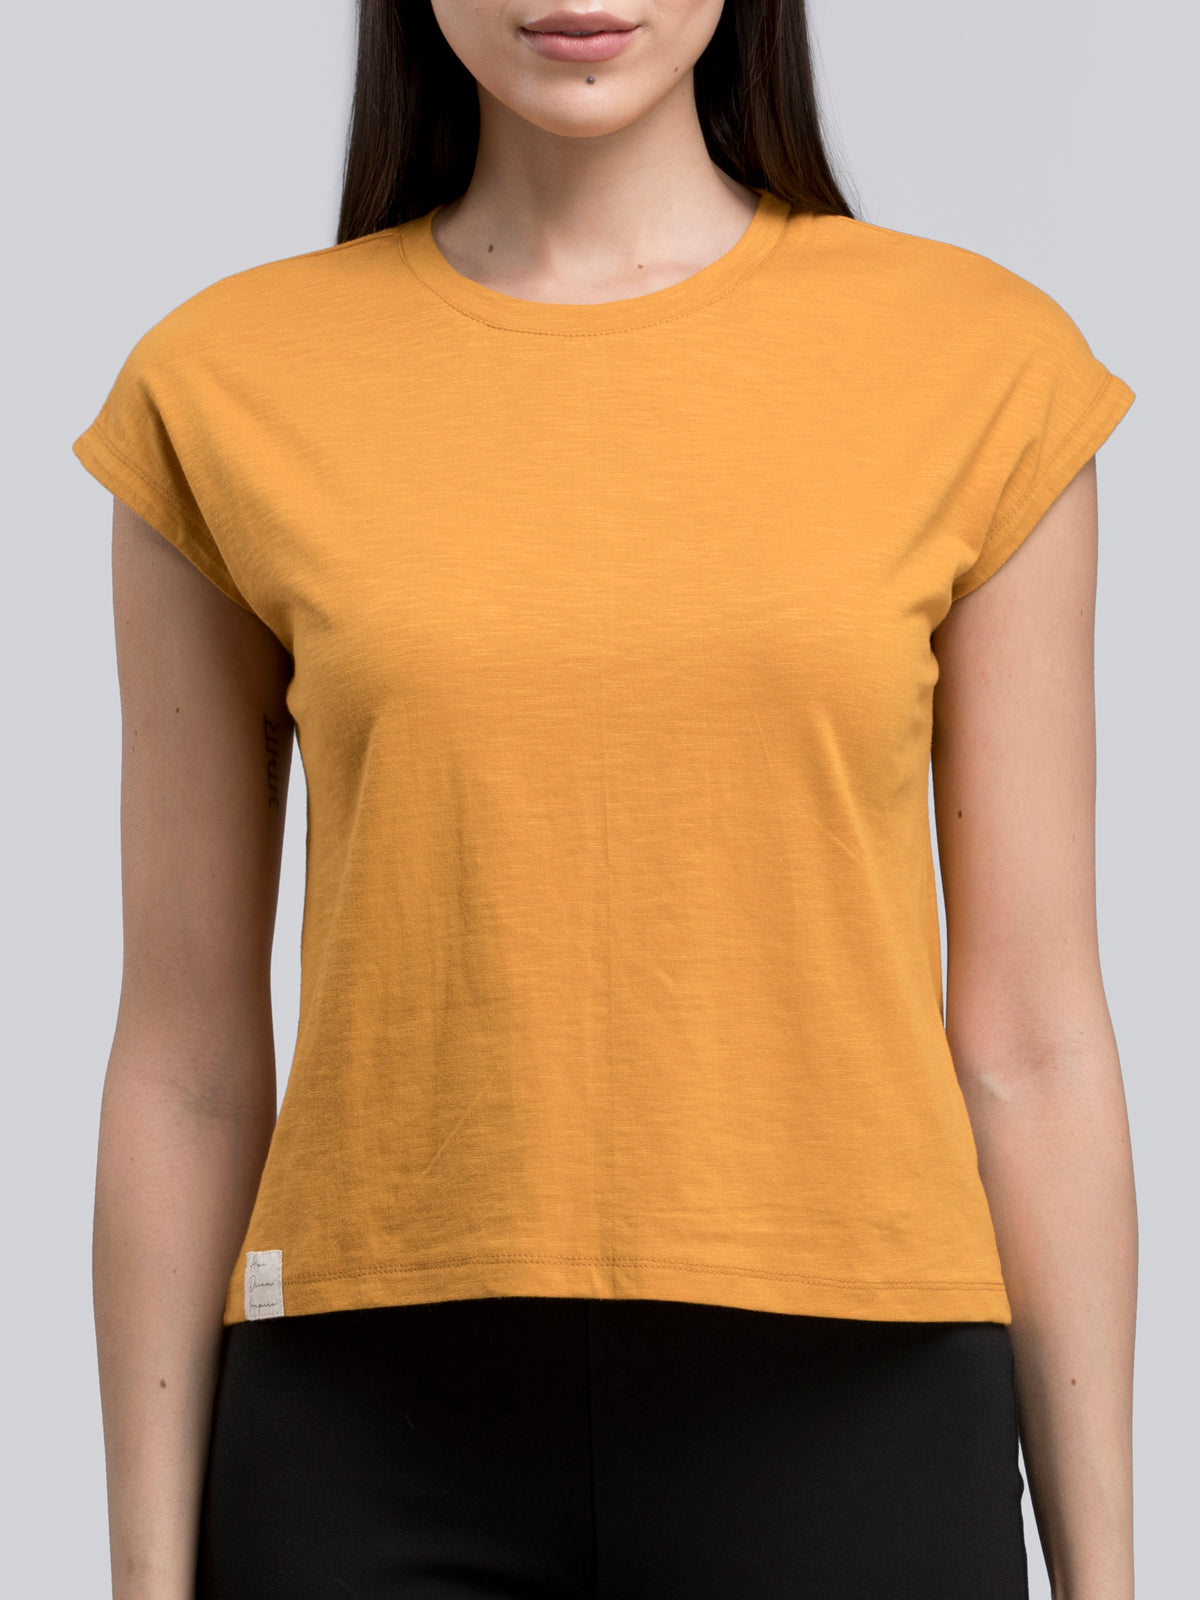 Cotton Drop Shoulder Knitted T Shirt - Mustard